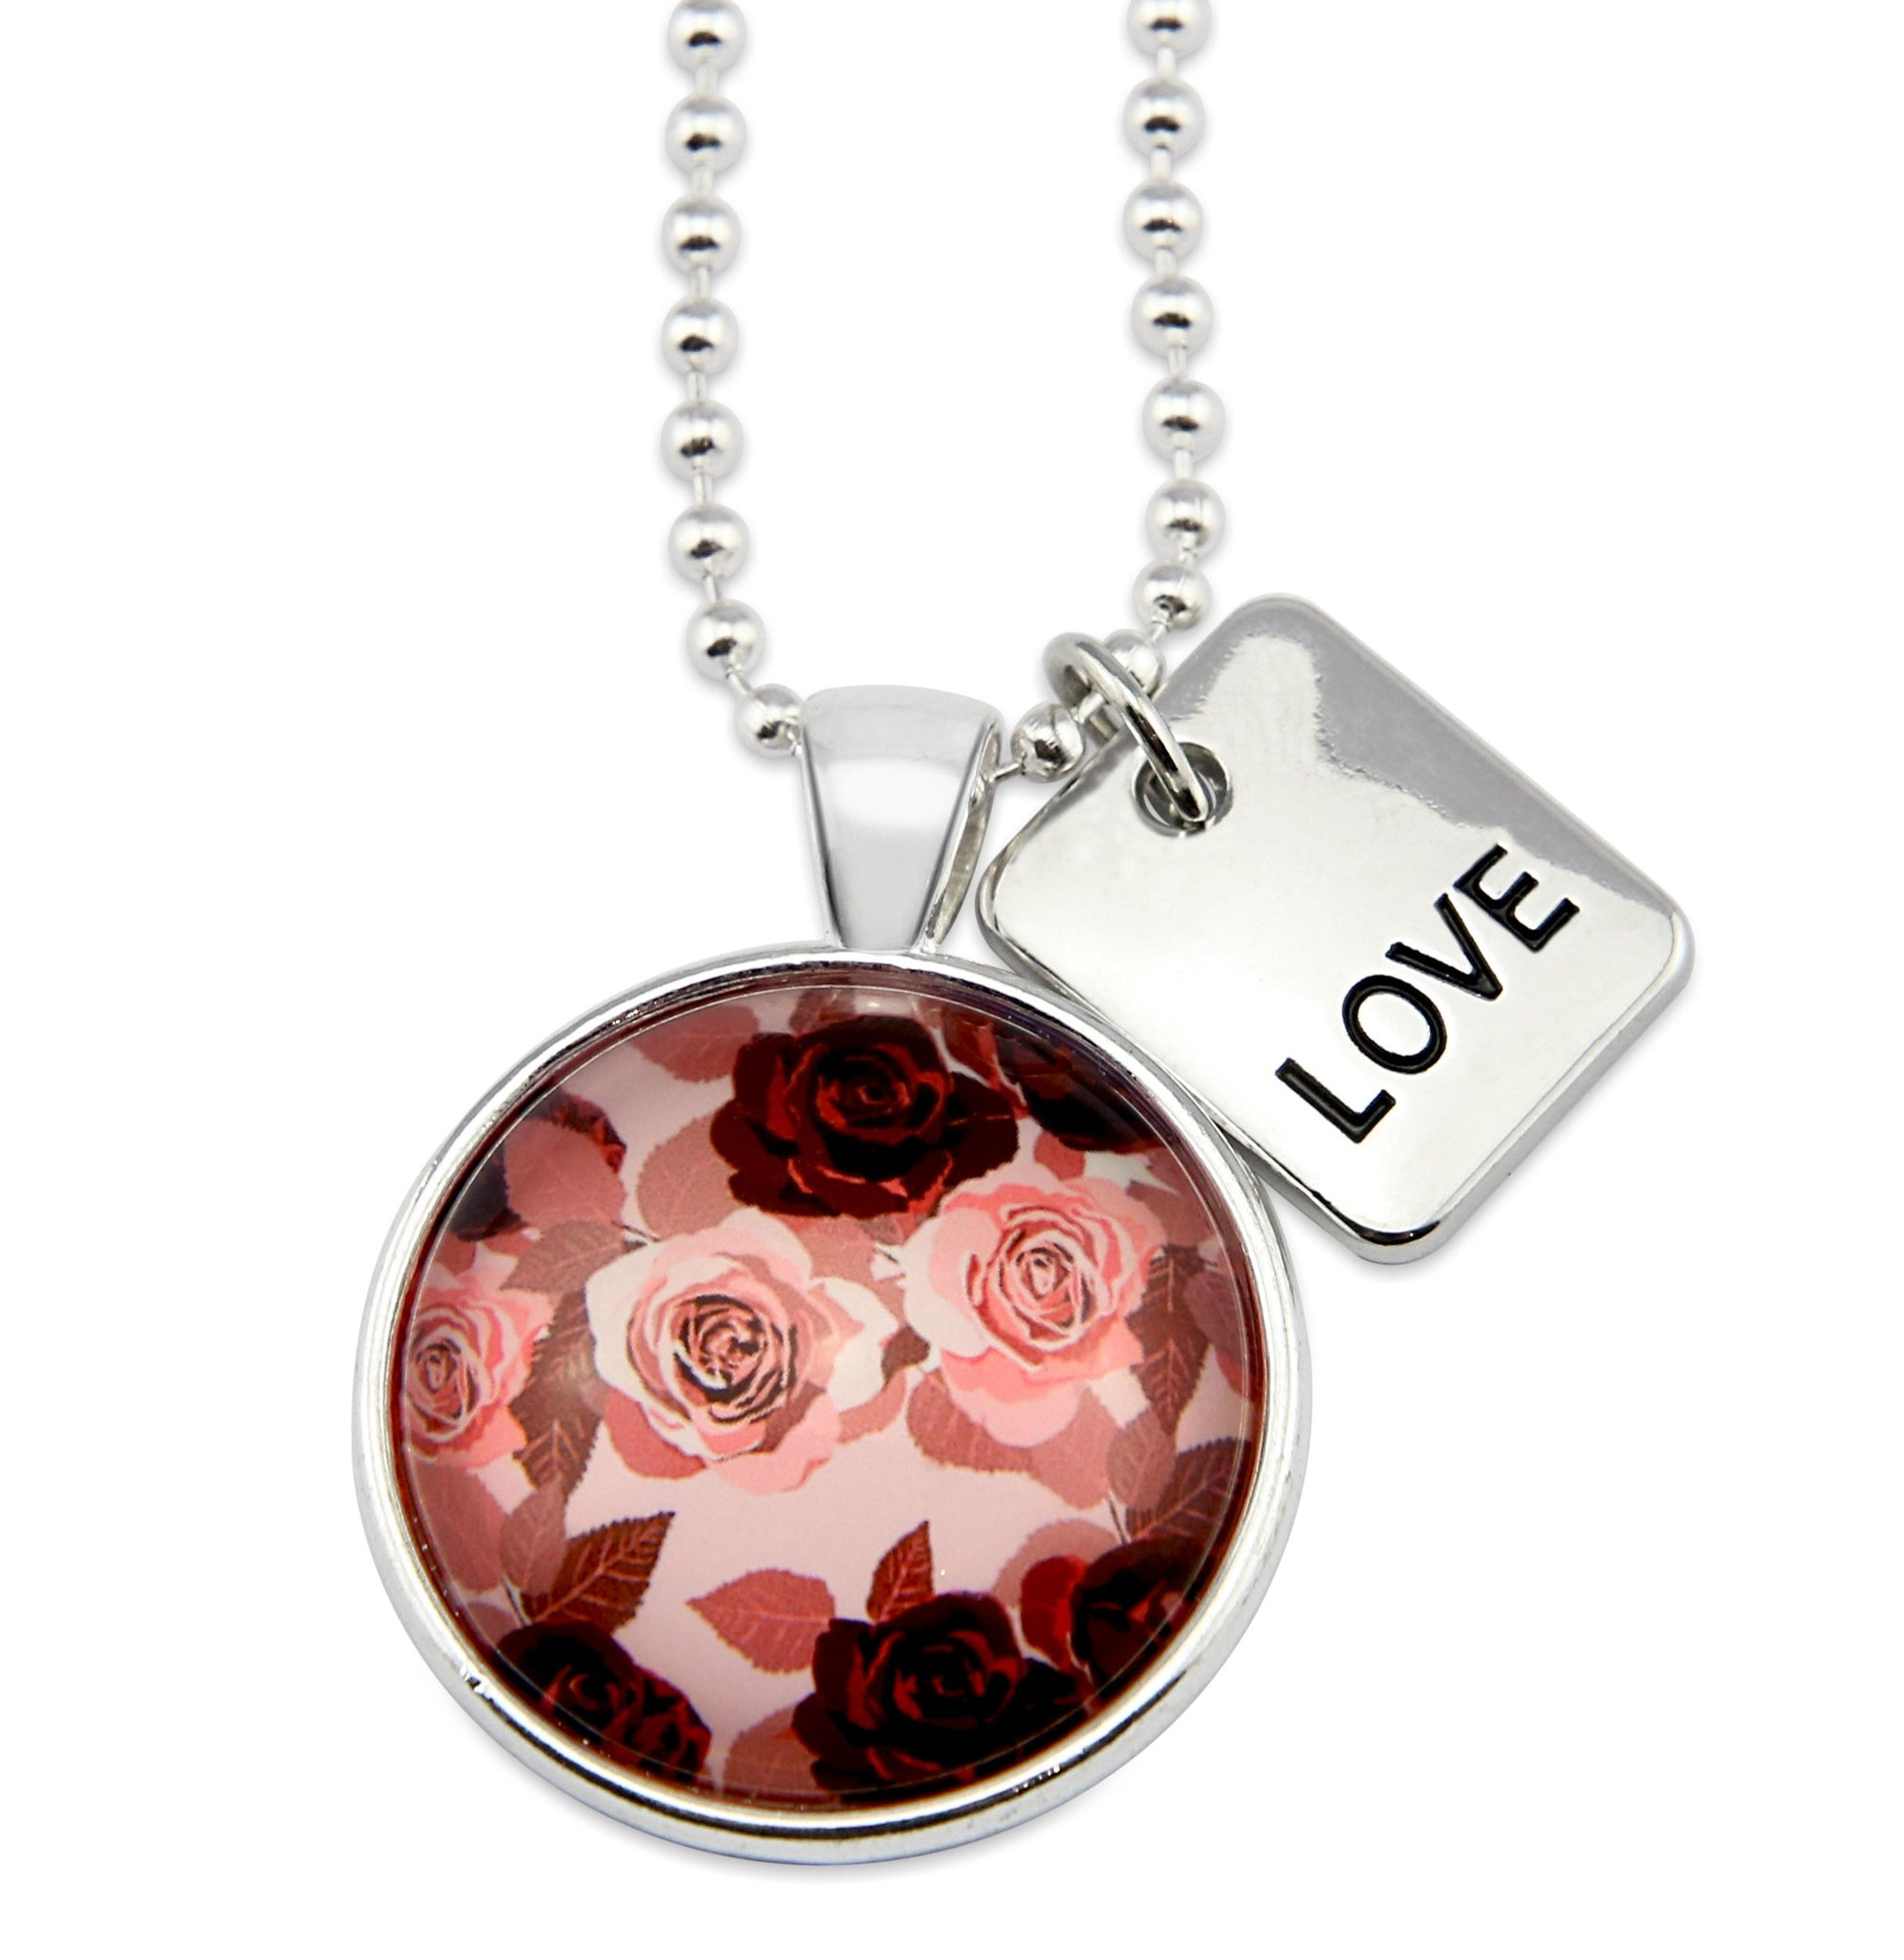 PINK COLLECTION - Bright Silver 'LOVE' Circle Necklace - Rosie (10323)